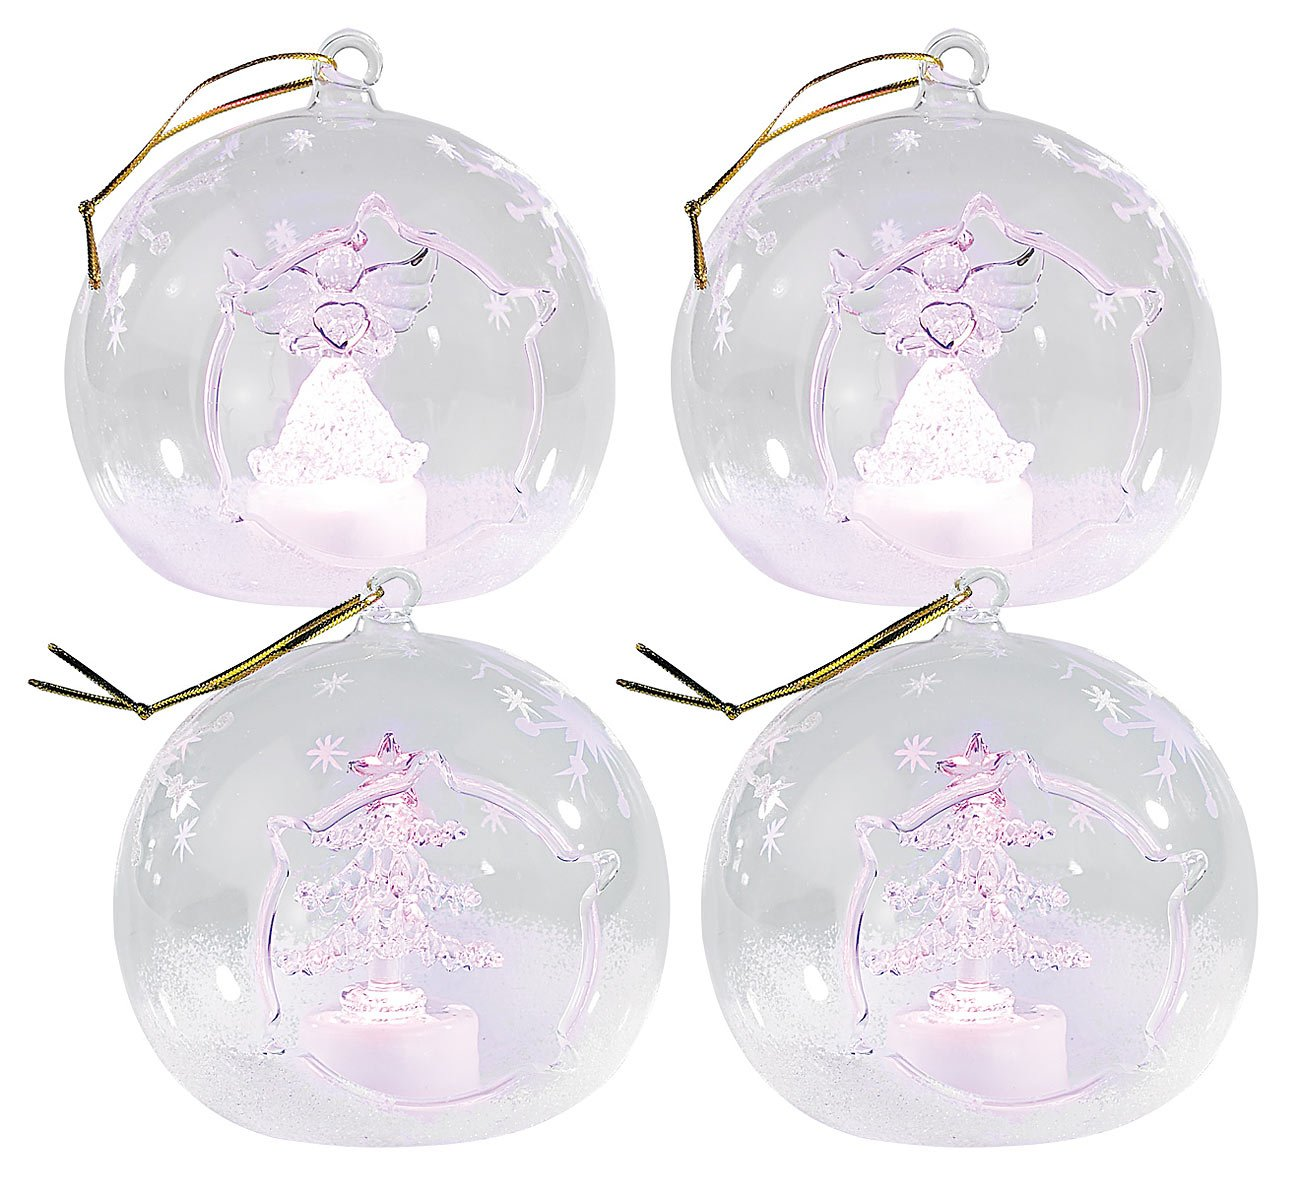 Lunartec-LED-Glaskugel-Mundgeblasene-LED-Glas-Ornamente-in-Kugelform-4er-Set-LED-Kugeln-fr-Weihnachten